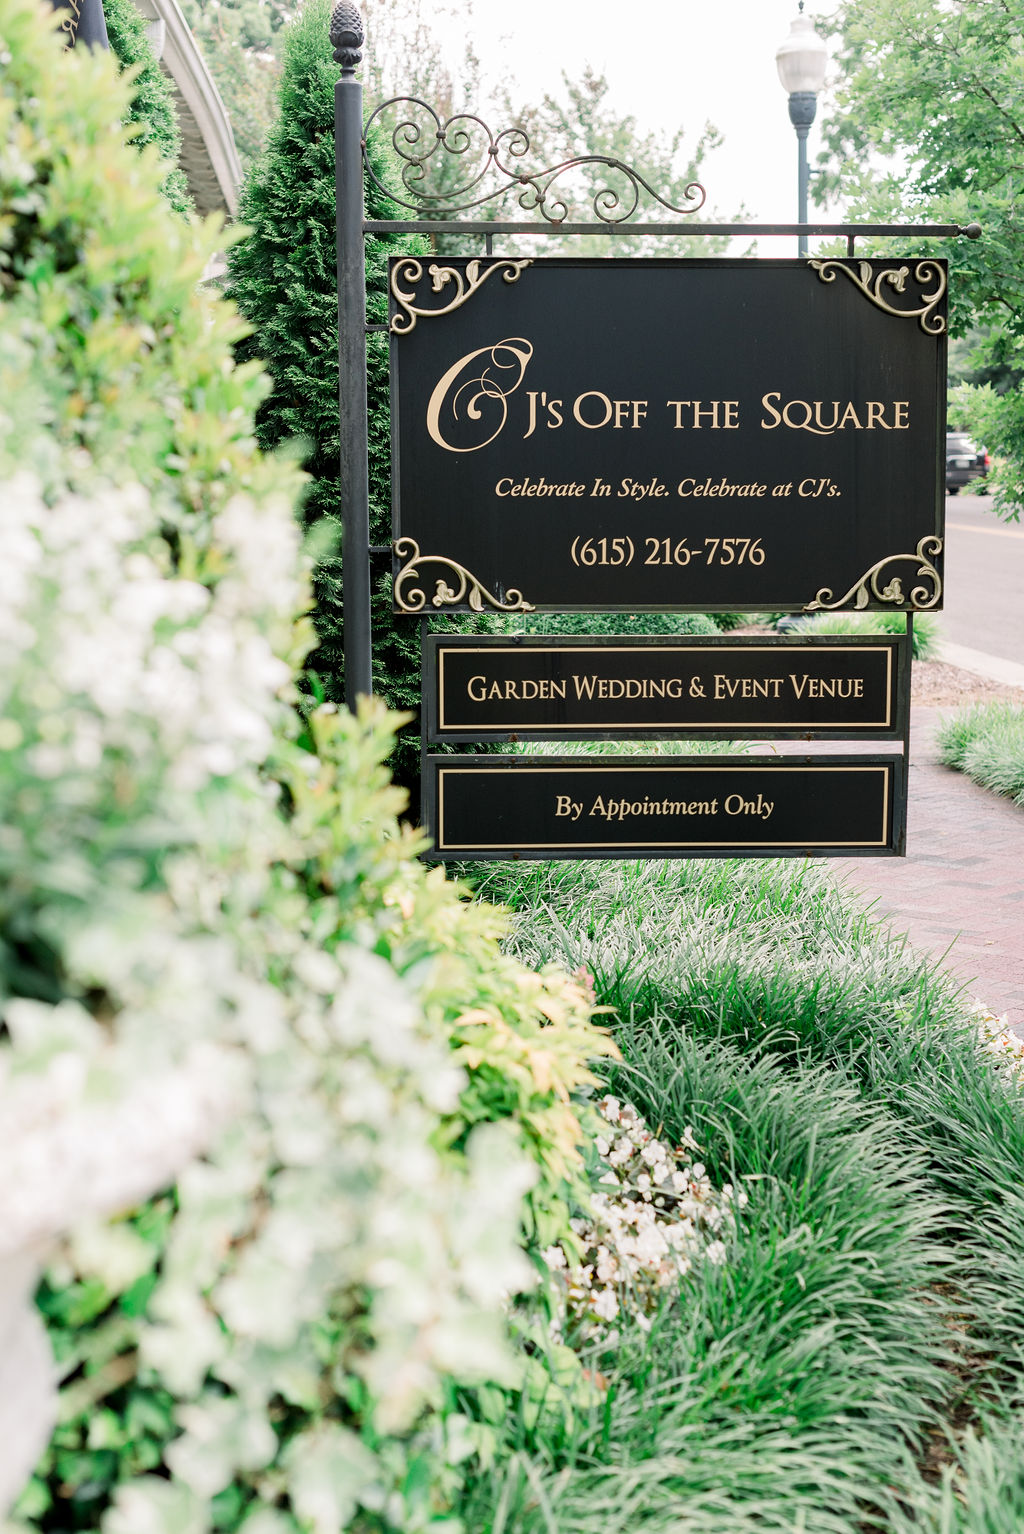 CJ's Off The Square sign / Romantic, Fun Spring June Garden Wedding in Pink